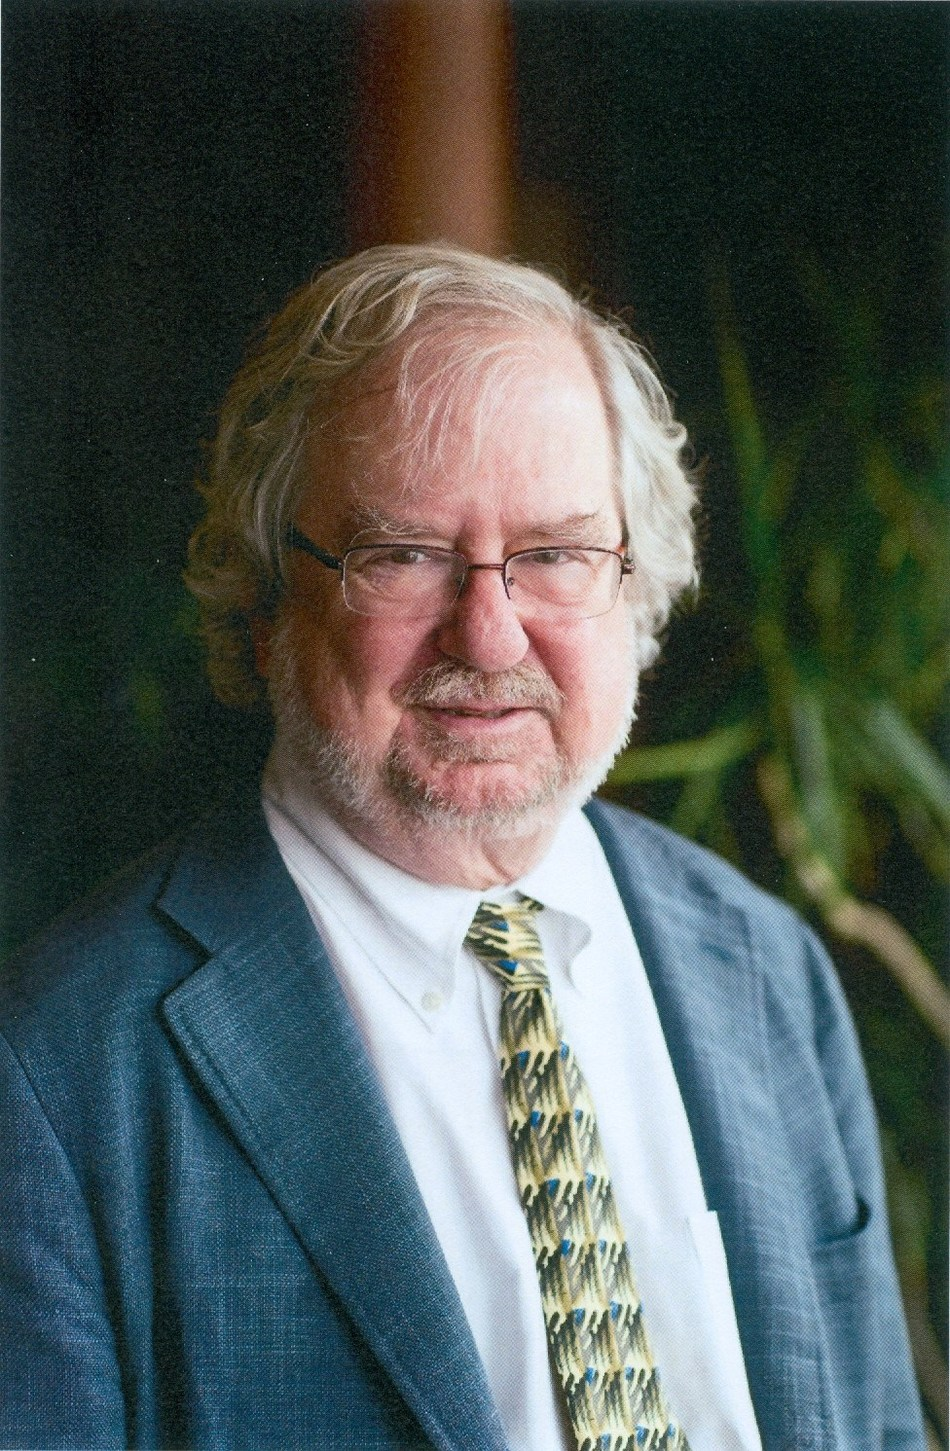 Professor James P. Allison, winner of King Faisal Prize 2018 for Medicine (PRNewsfoto/King Faisal Prize)